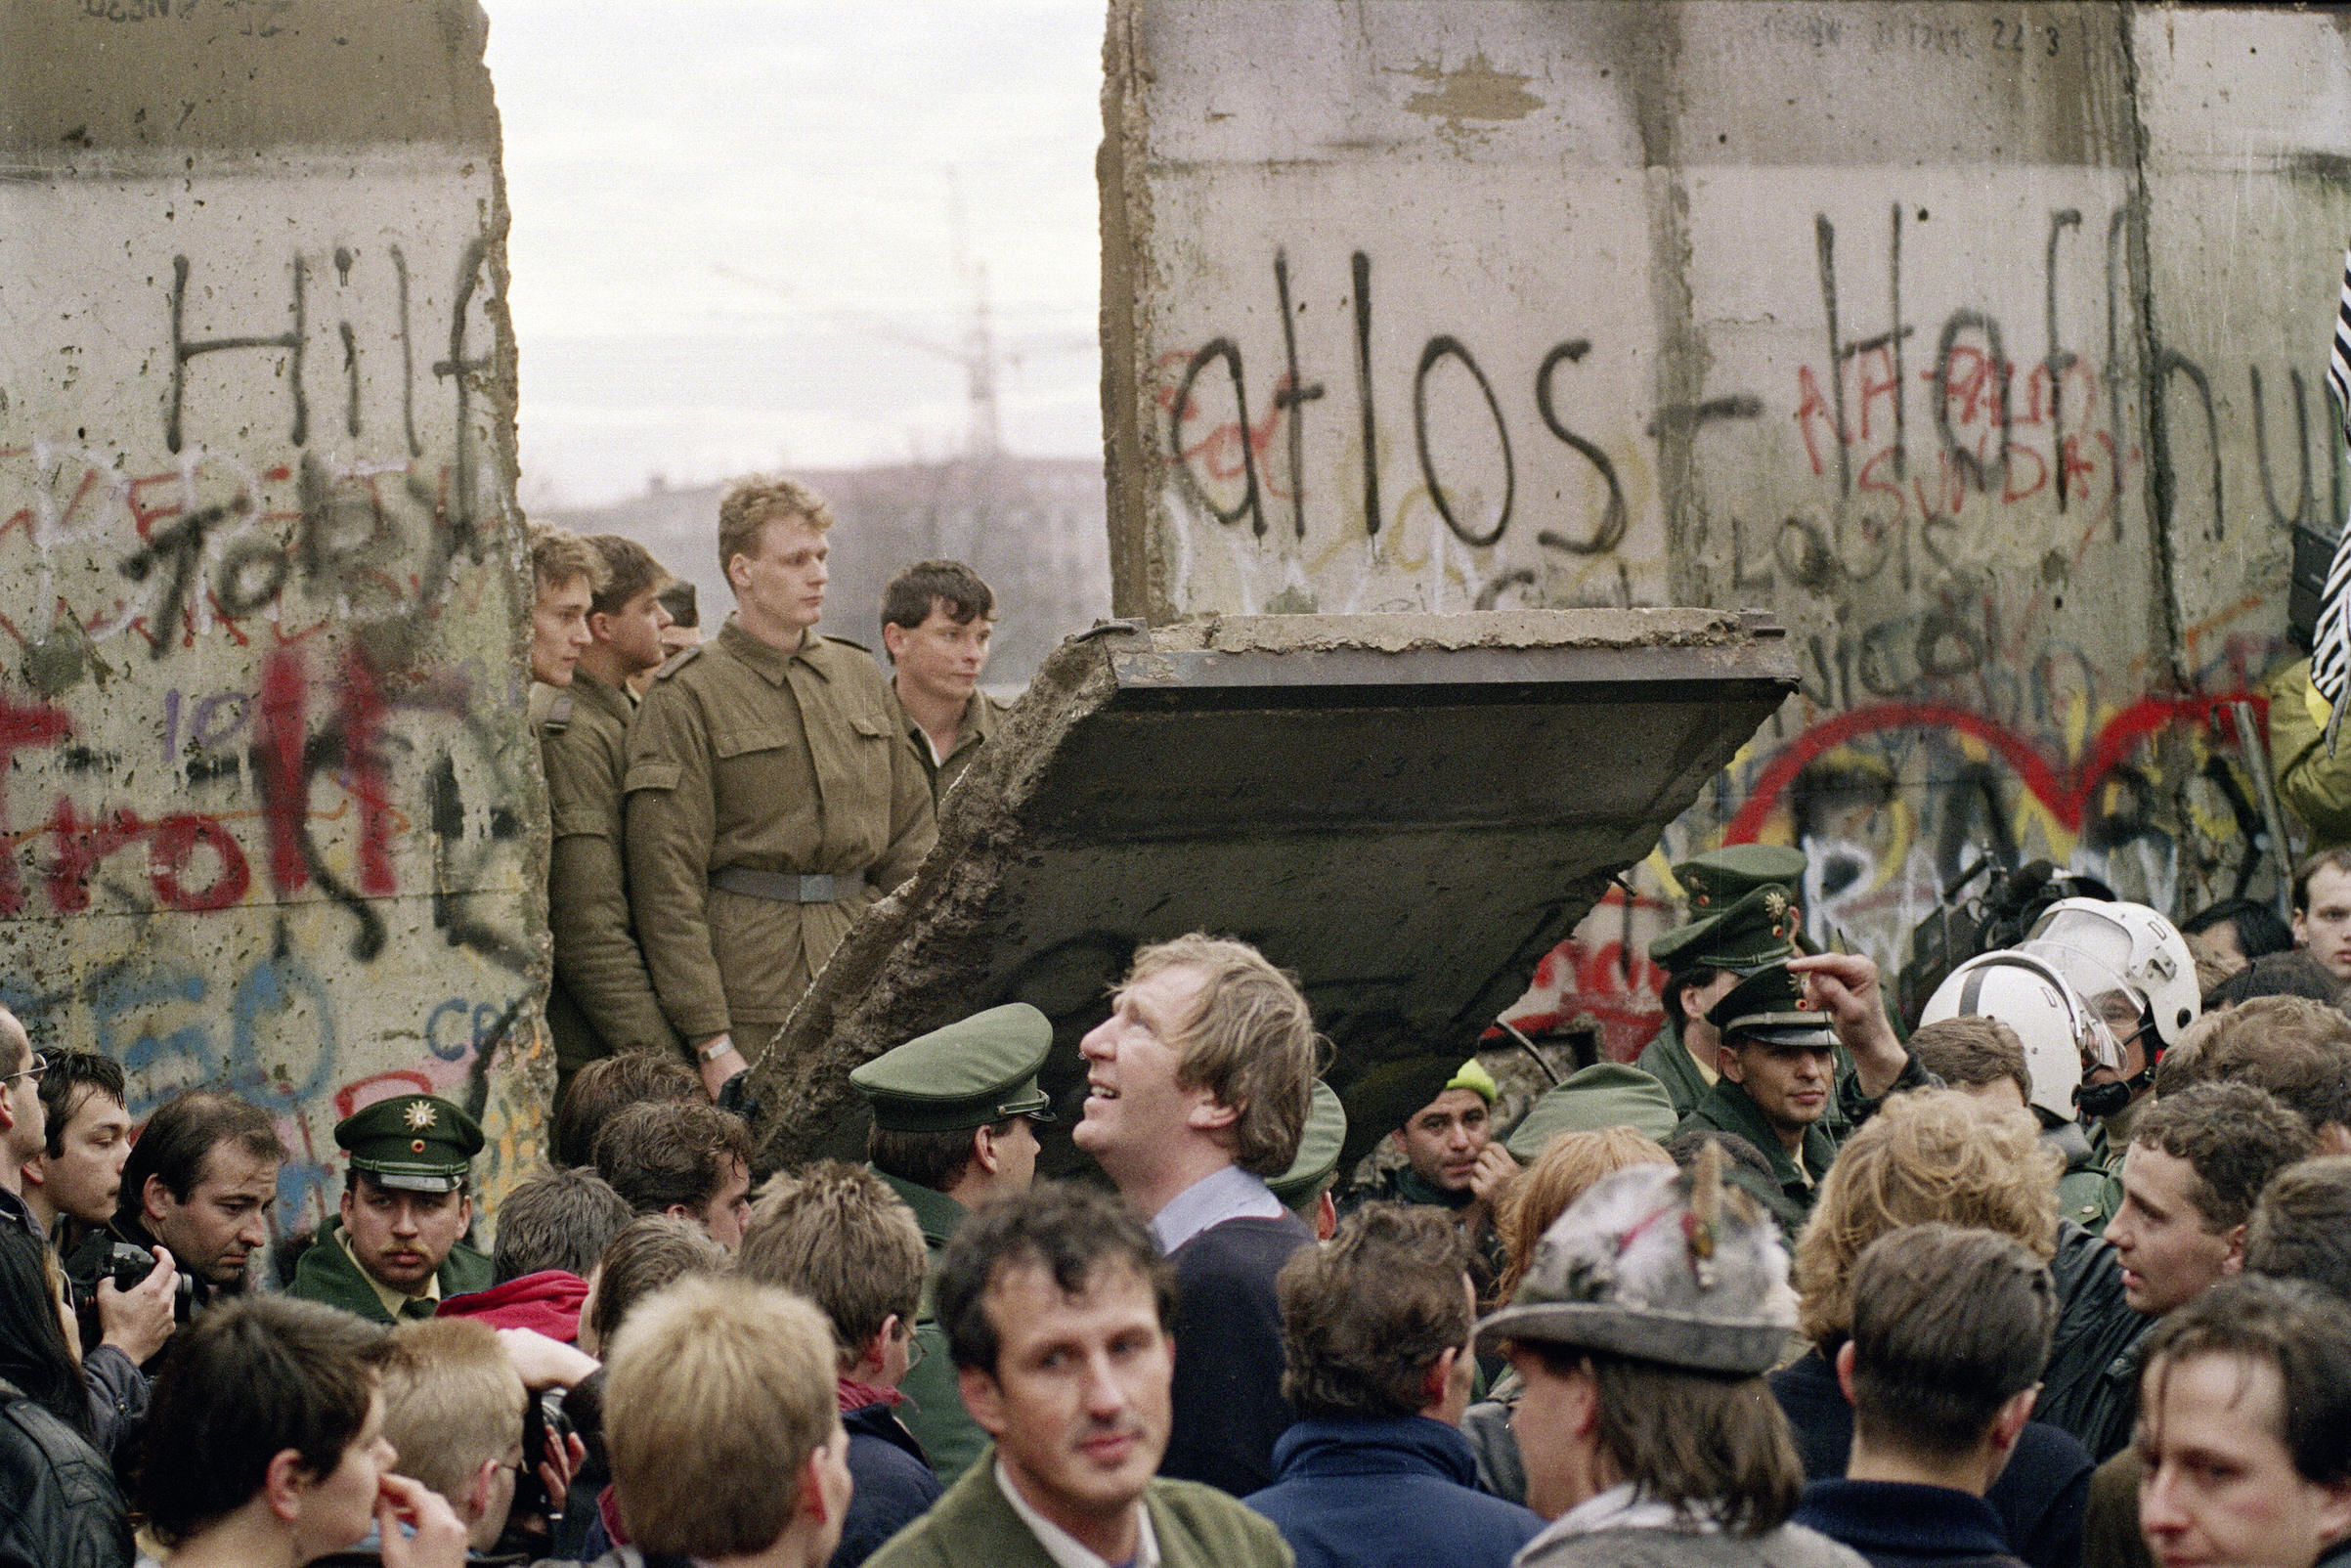 West Berliners crowd in front of the Berlin Wall early Nov. 11, 1989, as they watch East German border guards demolishing a section of the wall in order to open a new crossing point between East and West Berlin, near the Potsdamer Square.